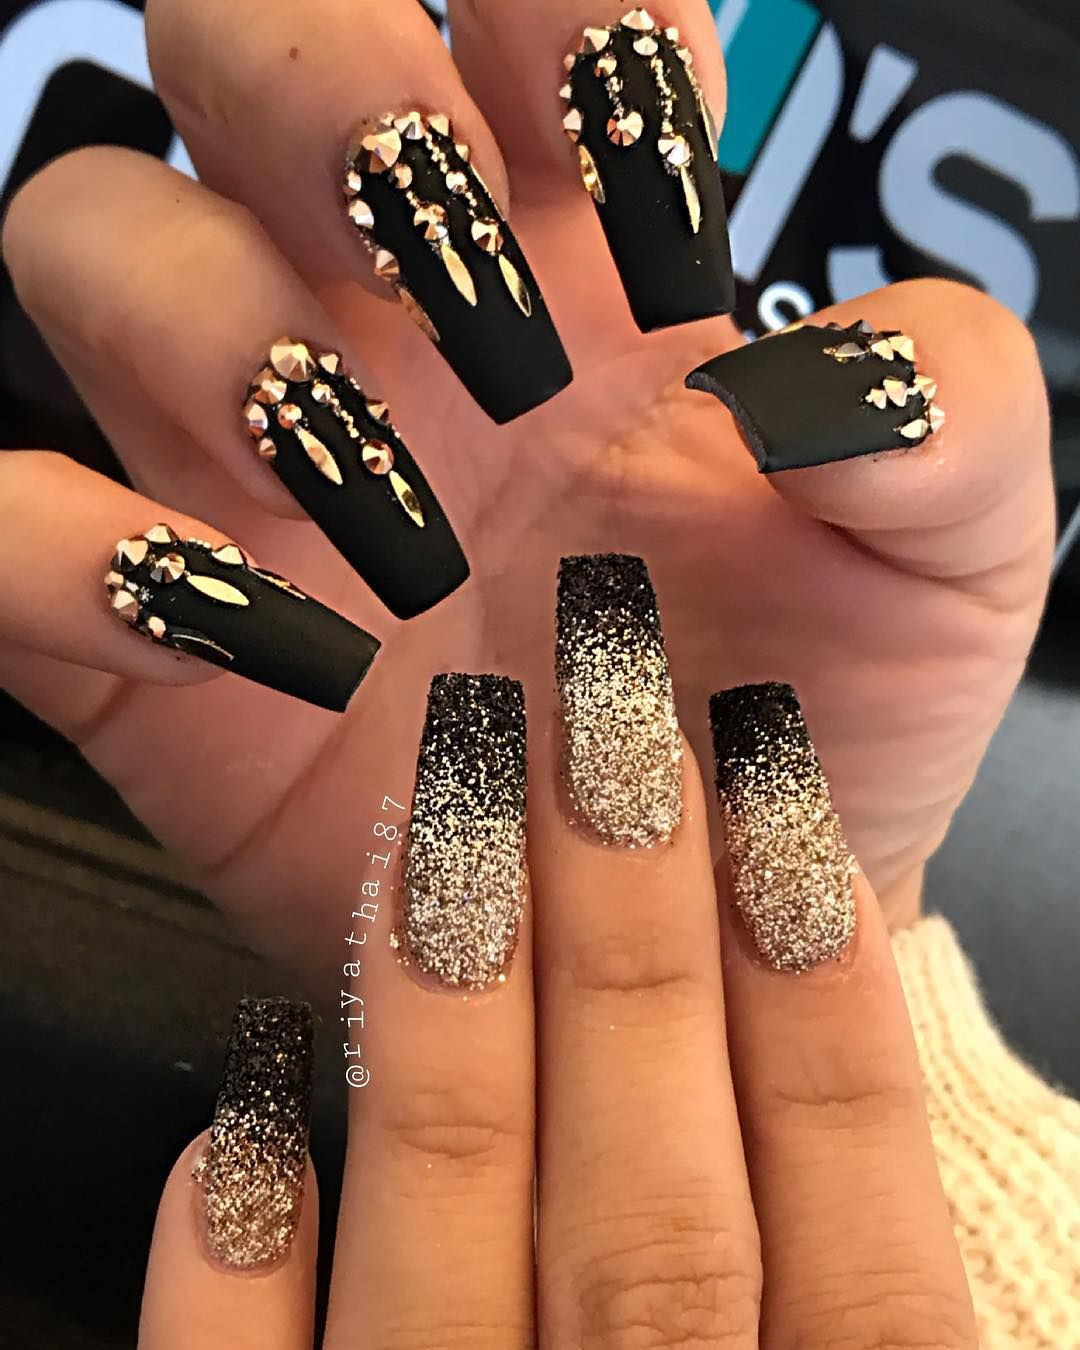 Riya S Nail Salon On Instagram Riyasgelpolish Extrablack Riyanowipemattetopcoat Cle Nailpro Gold Nails Gold Nail Designs Gold Acrylic Nails